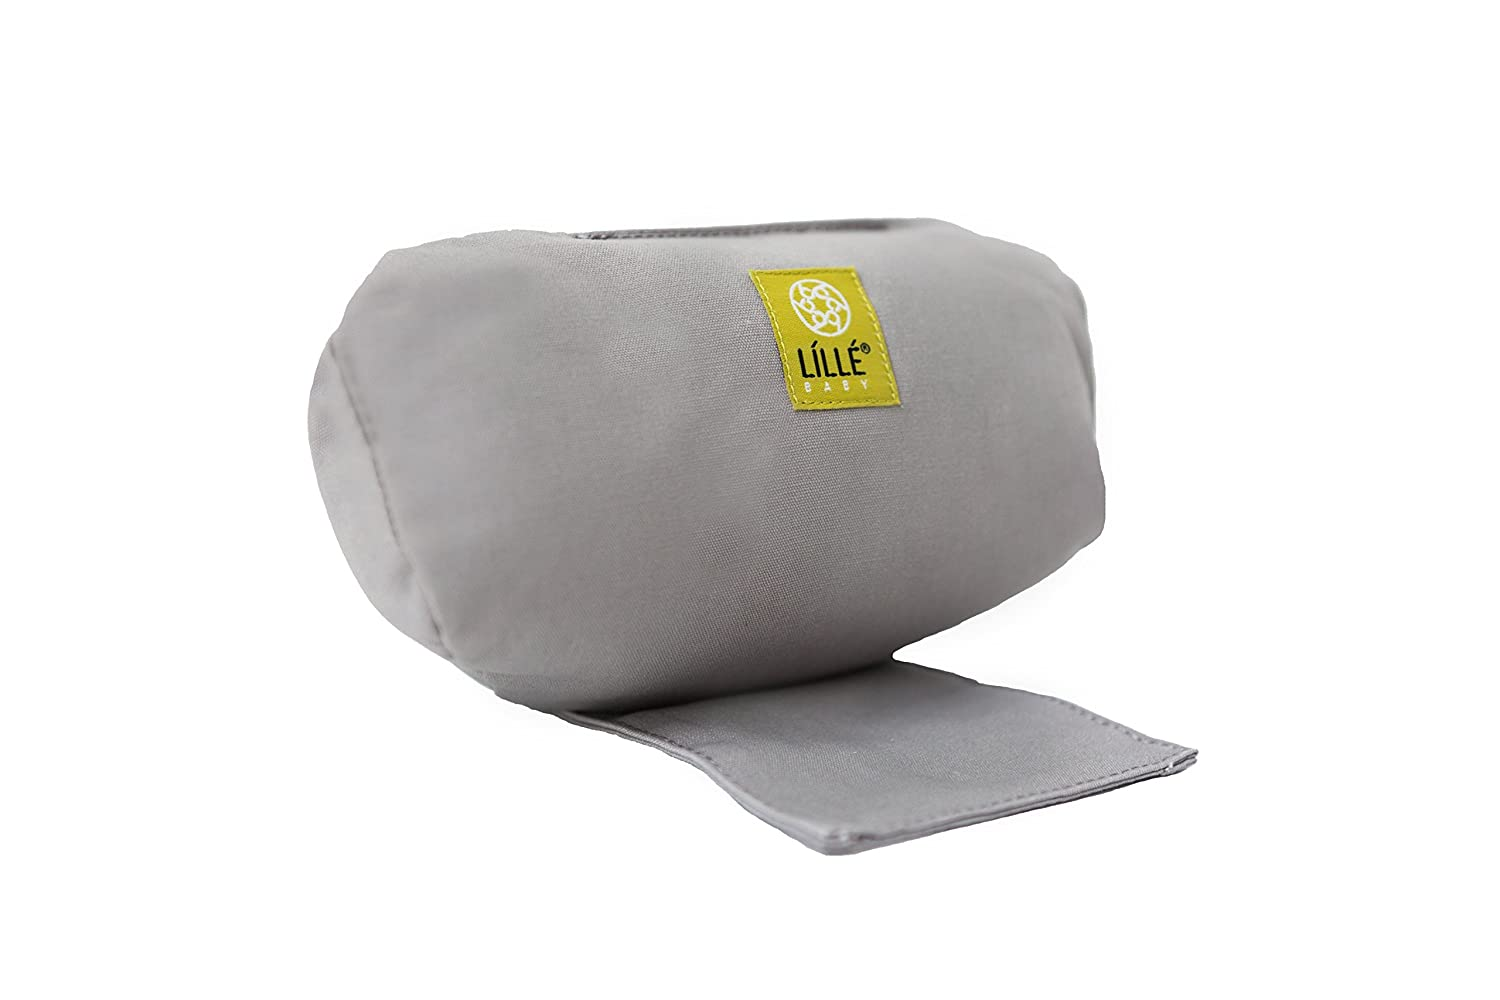 LÍLLÉbaby Infant Pillow, Grey - Washable Ergonomic Pillow for Baby Carrier LILLEbaby ASC-104-P-sf